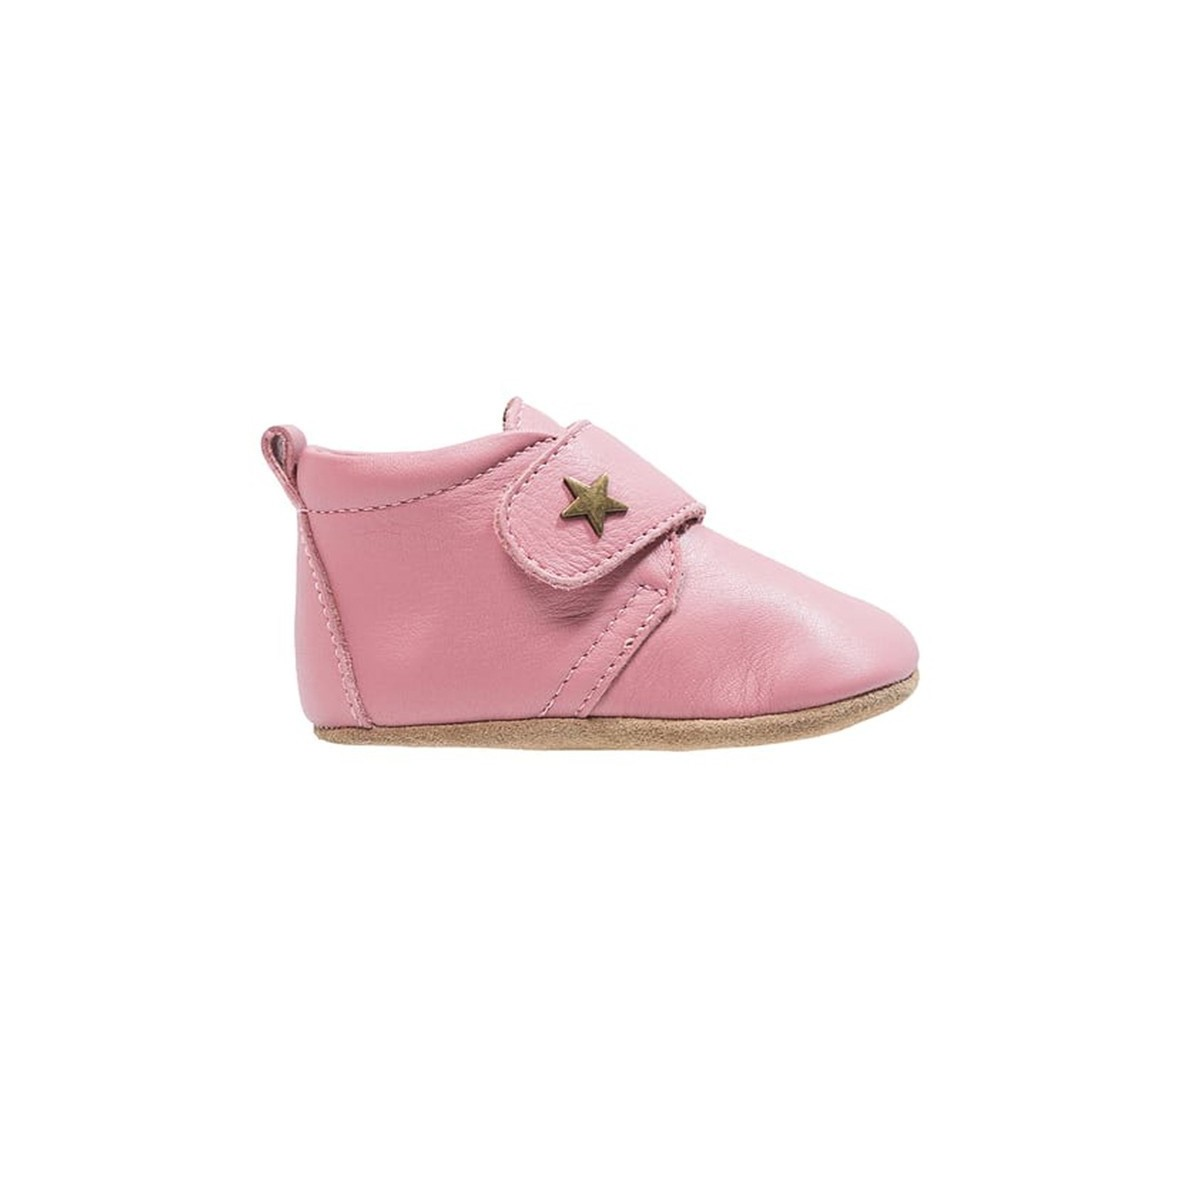 Chaussons Star velcro rose